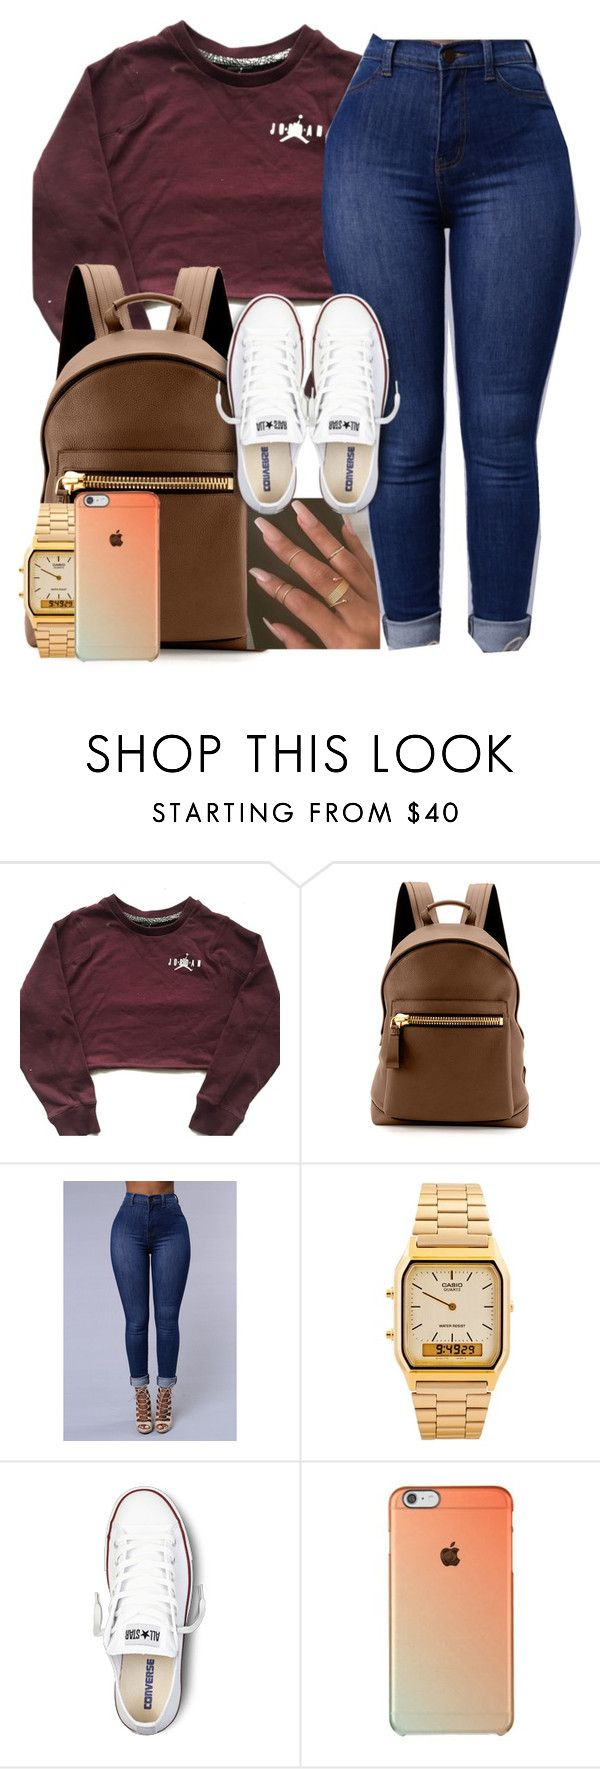 """""""Fettish"""" by imwhit ❤ liked on Polyvore featuring Tom Ford, American Apparel and Converse"""